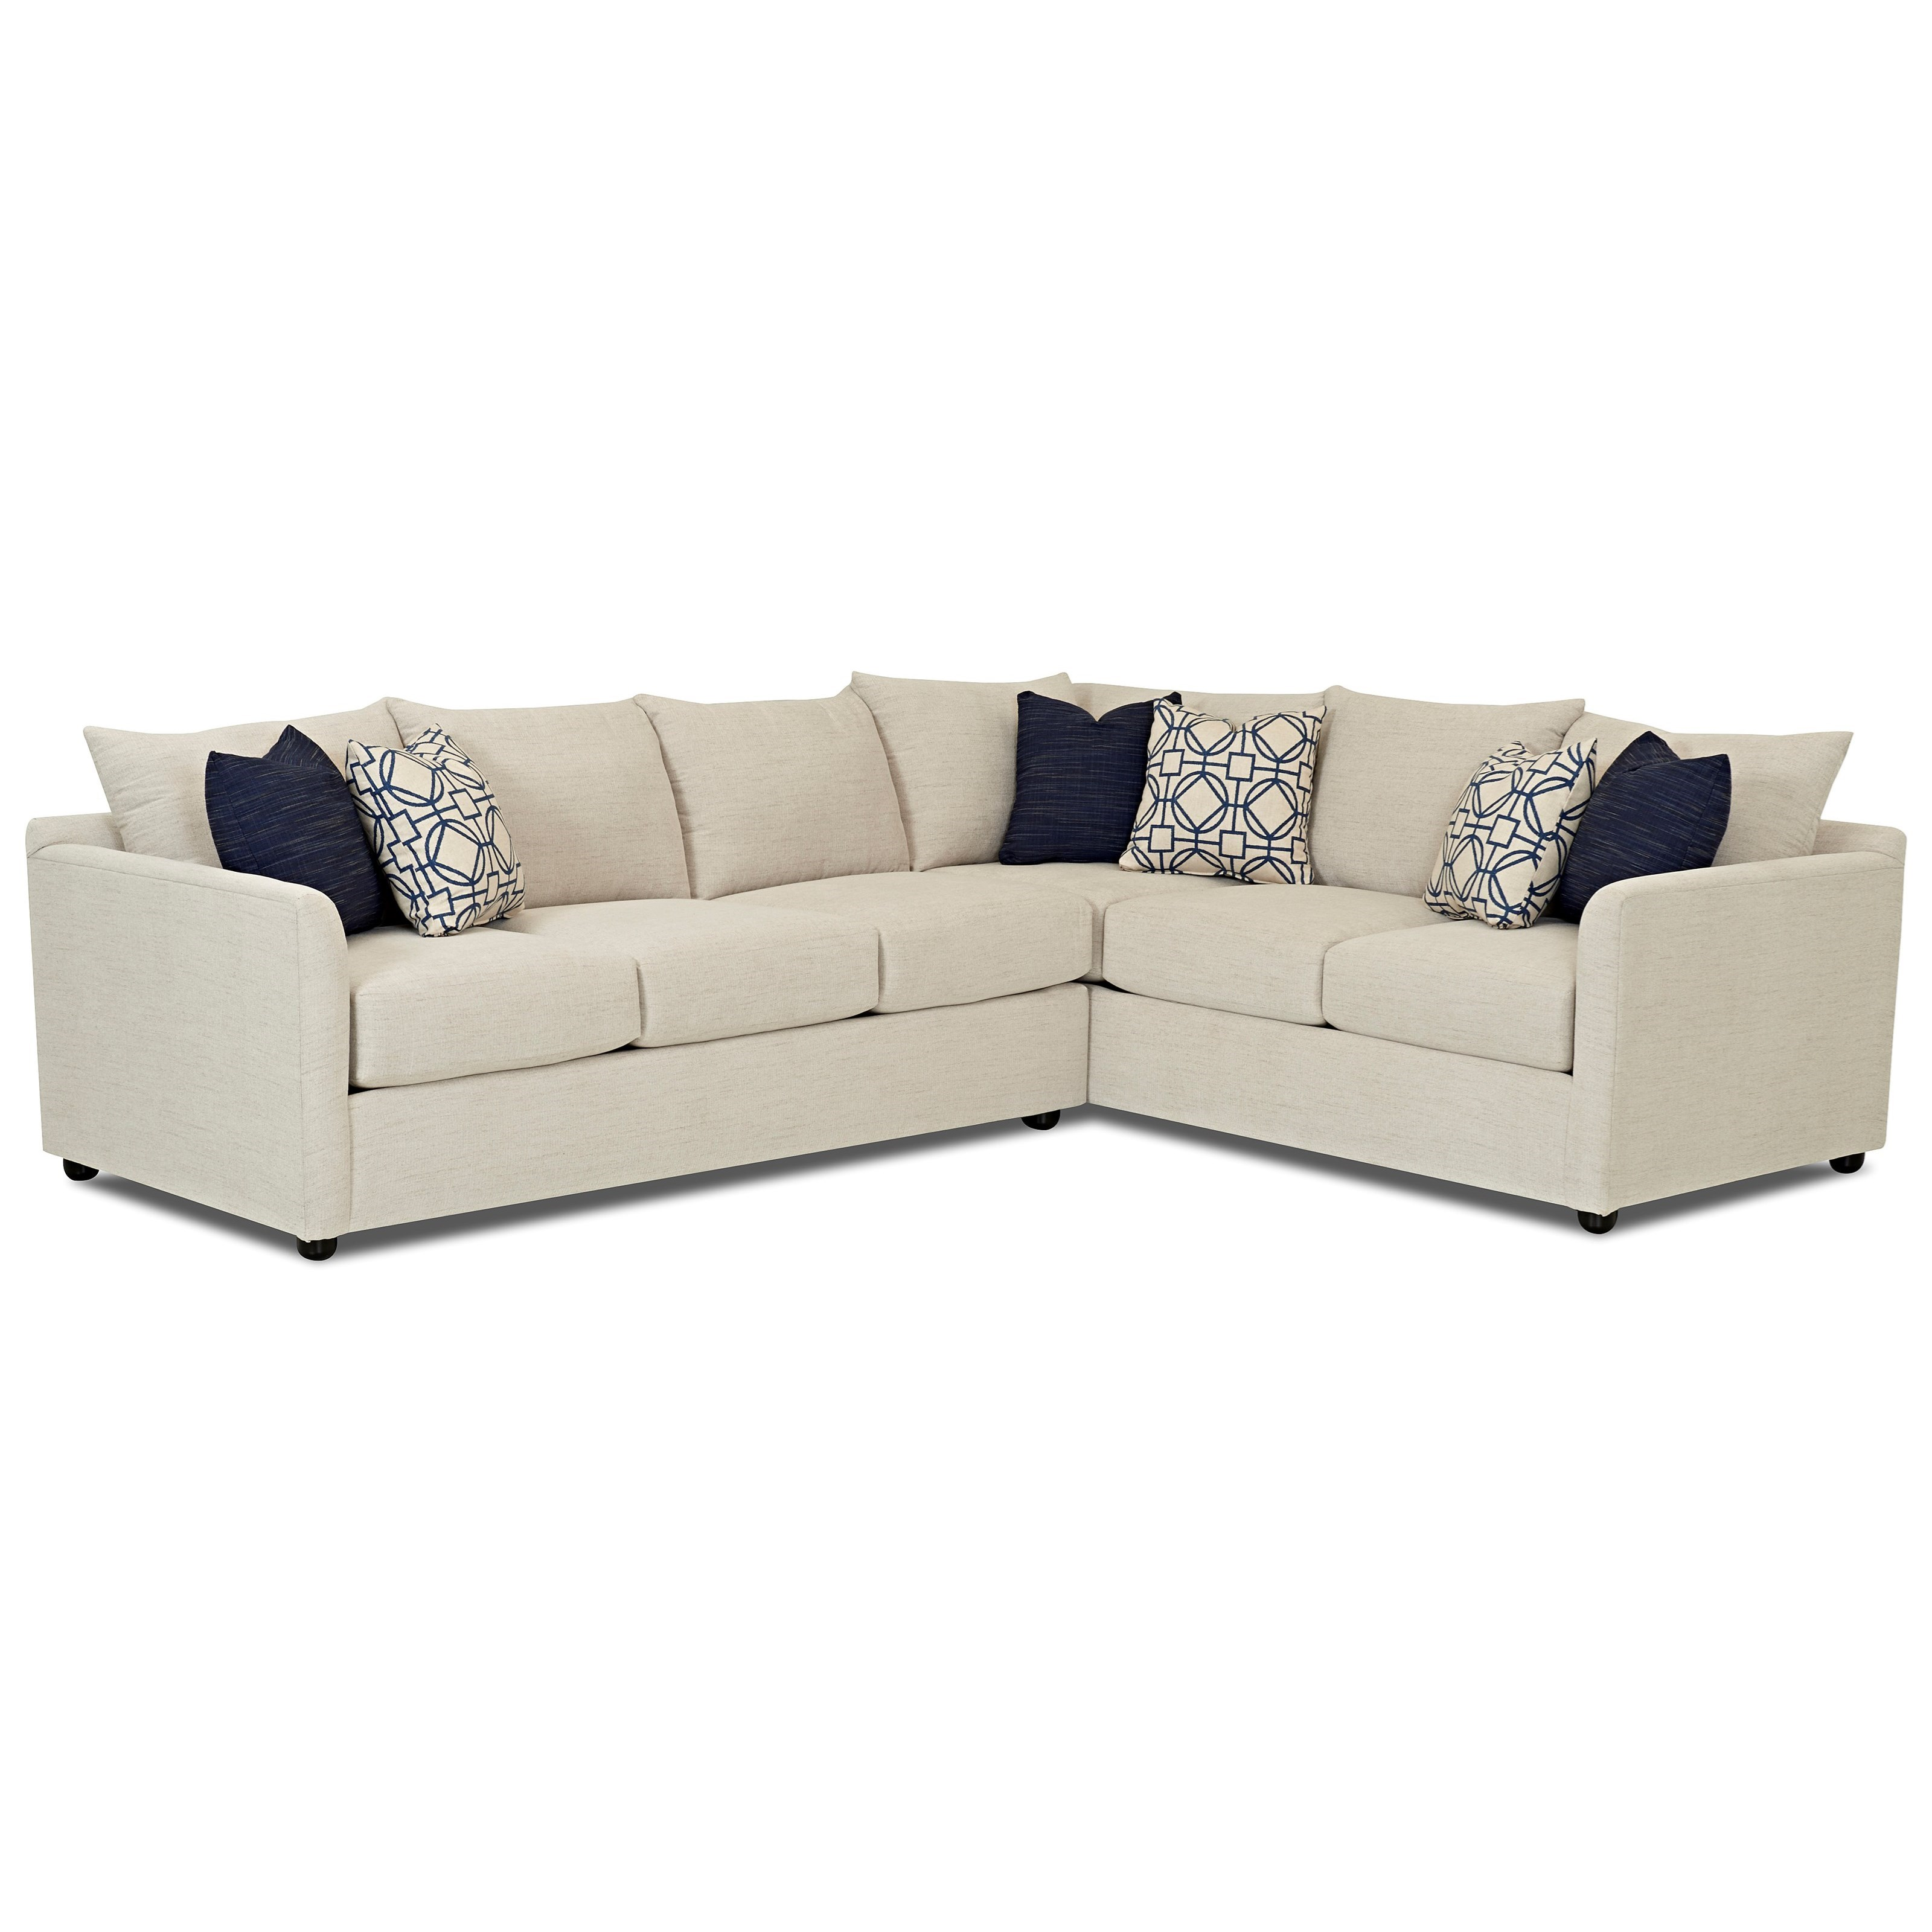 Atlanta Sectional Sofa by Klaussner at Northeast Factory Direct